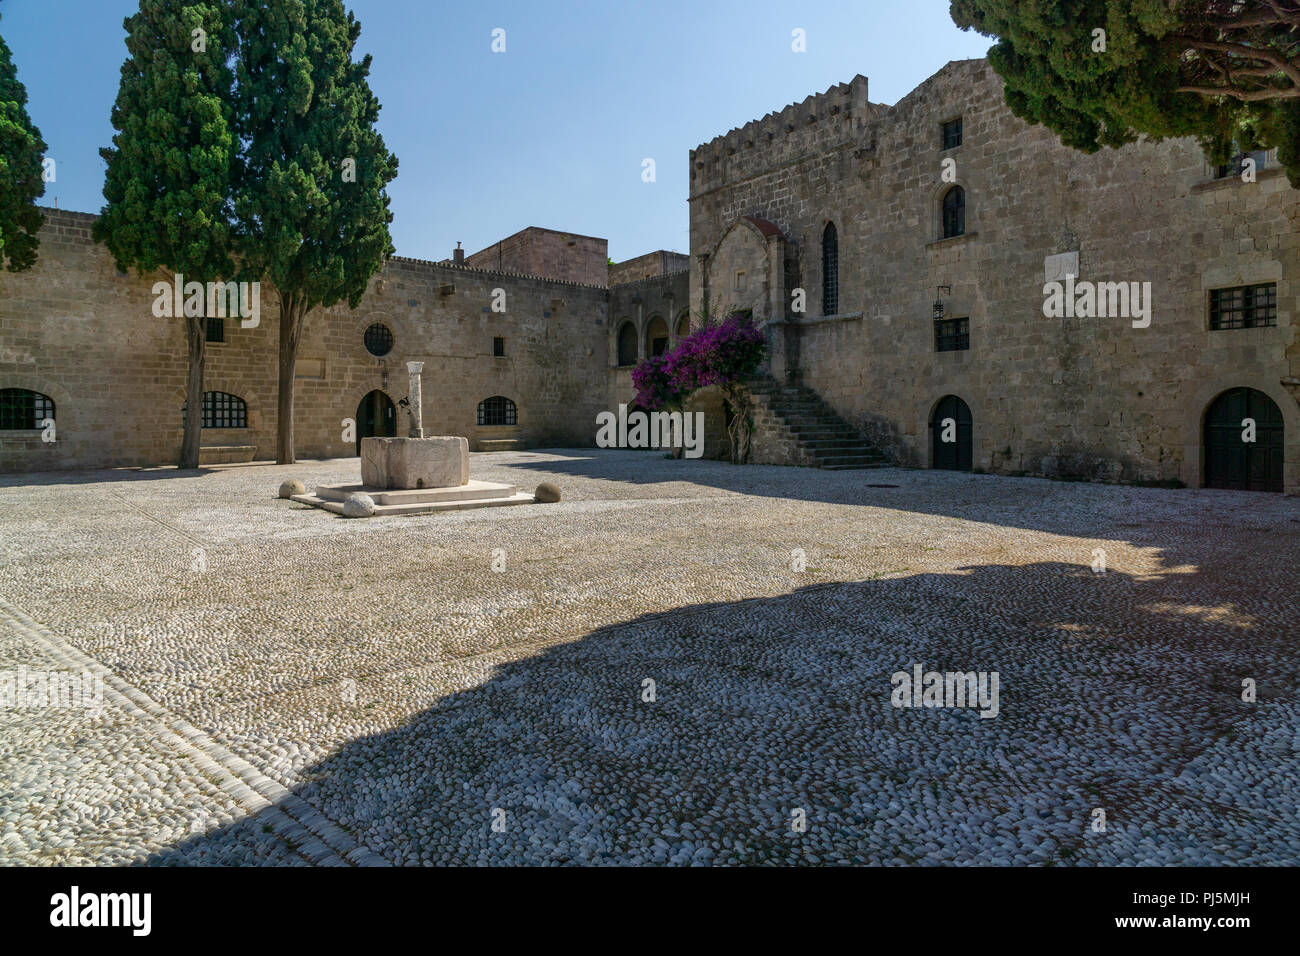 Place on Auberge of the Langue of Auvergne, Rhodes Greece Stock ...